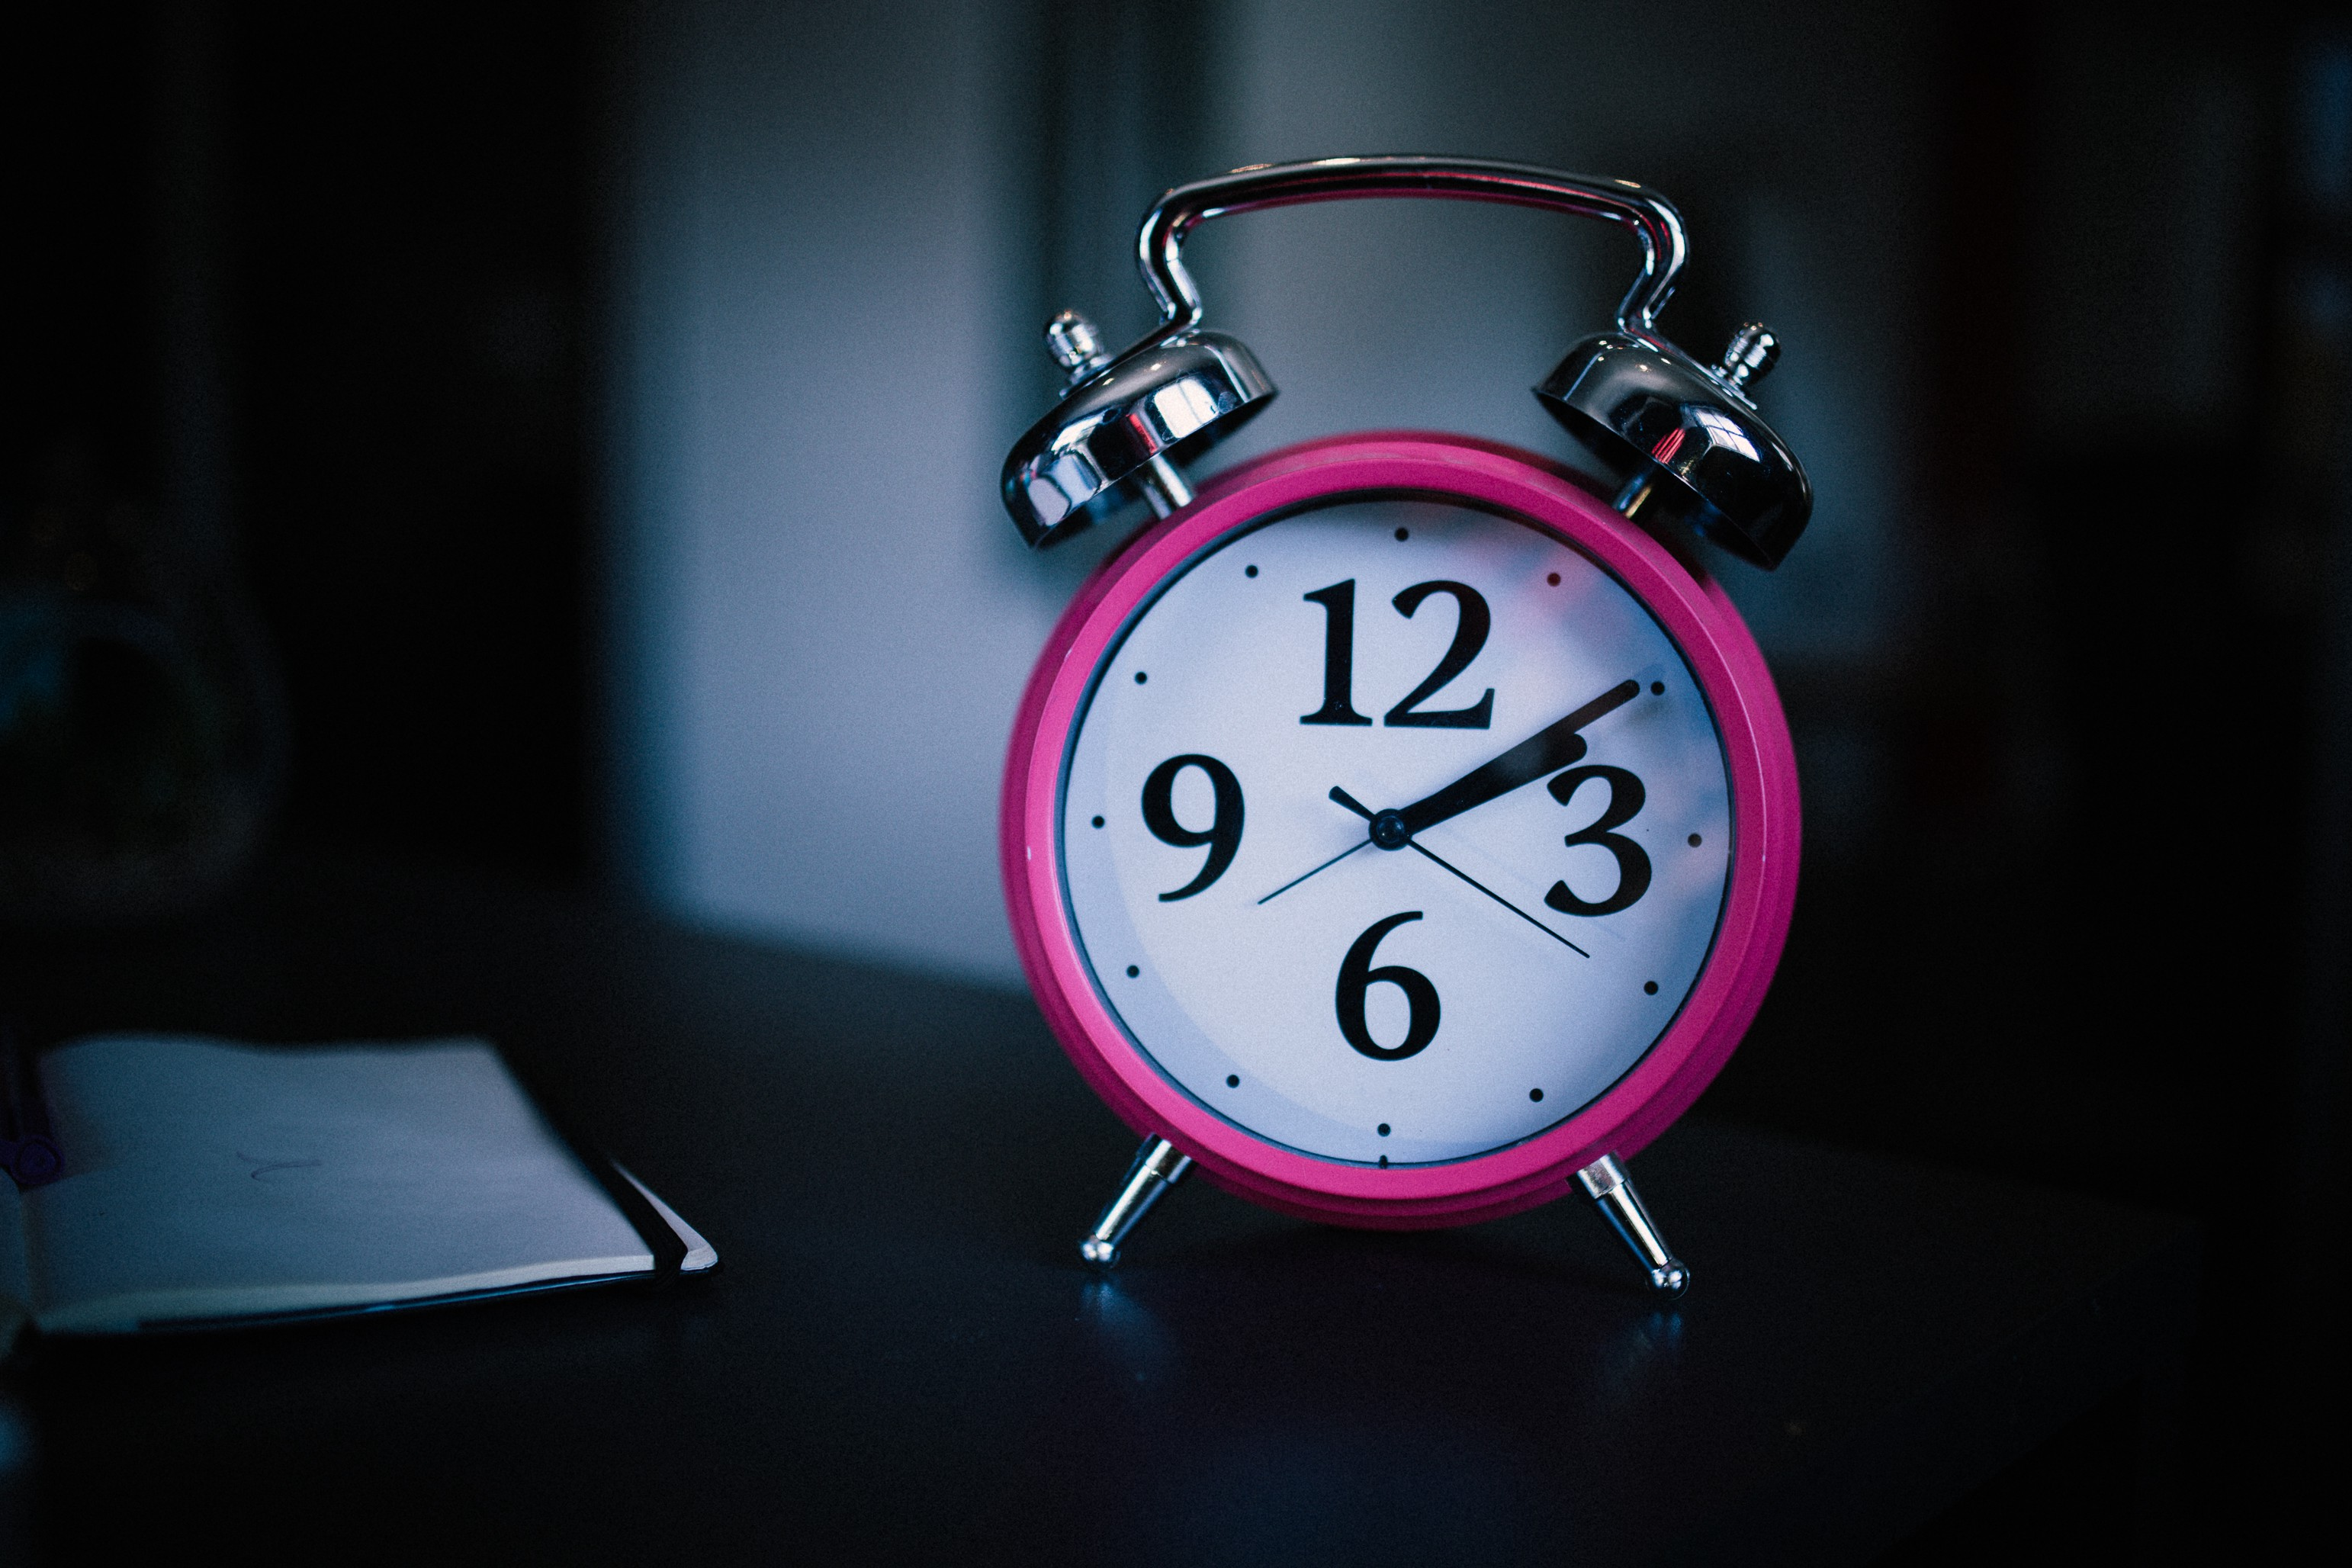 An alarm clock helps set times for sleeping and waking